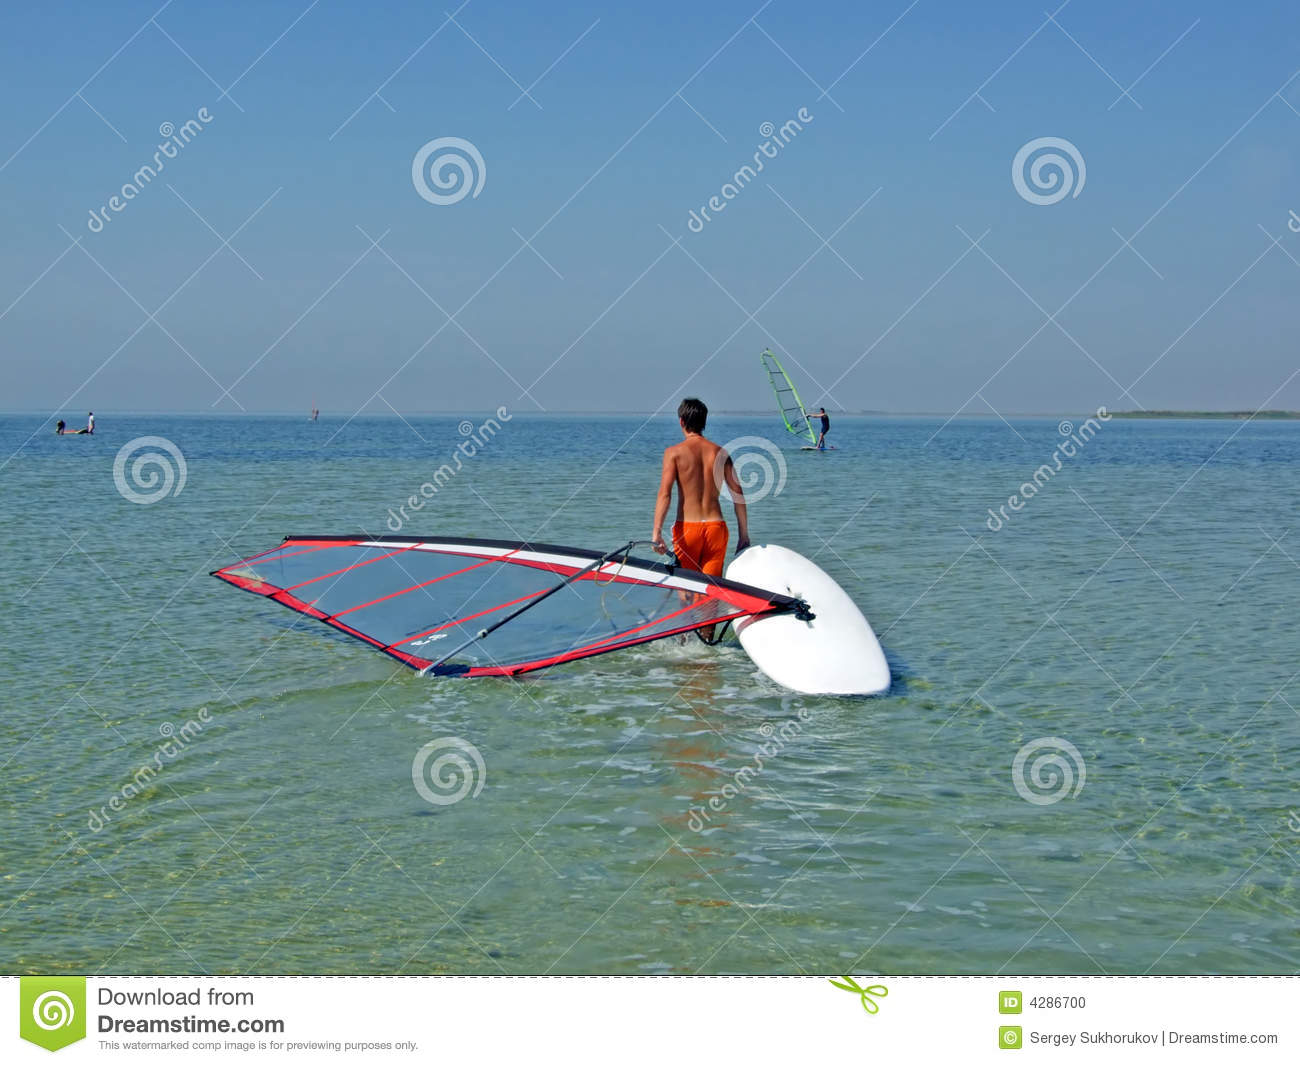 Guy drags the windsurf